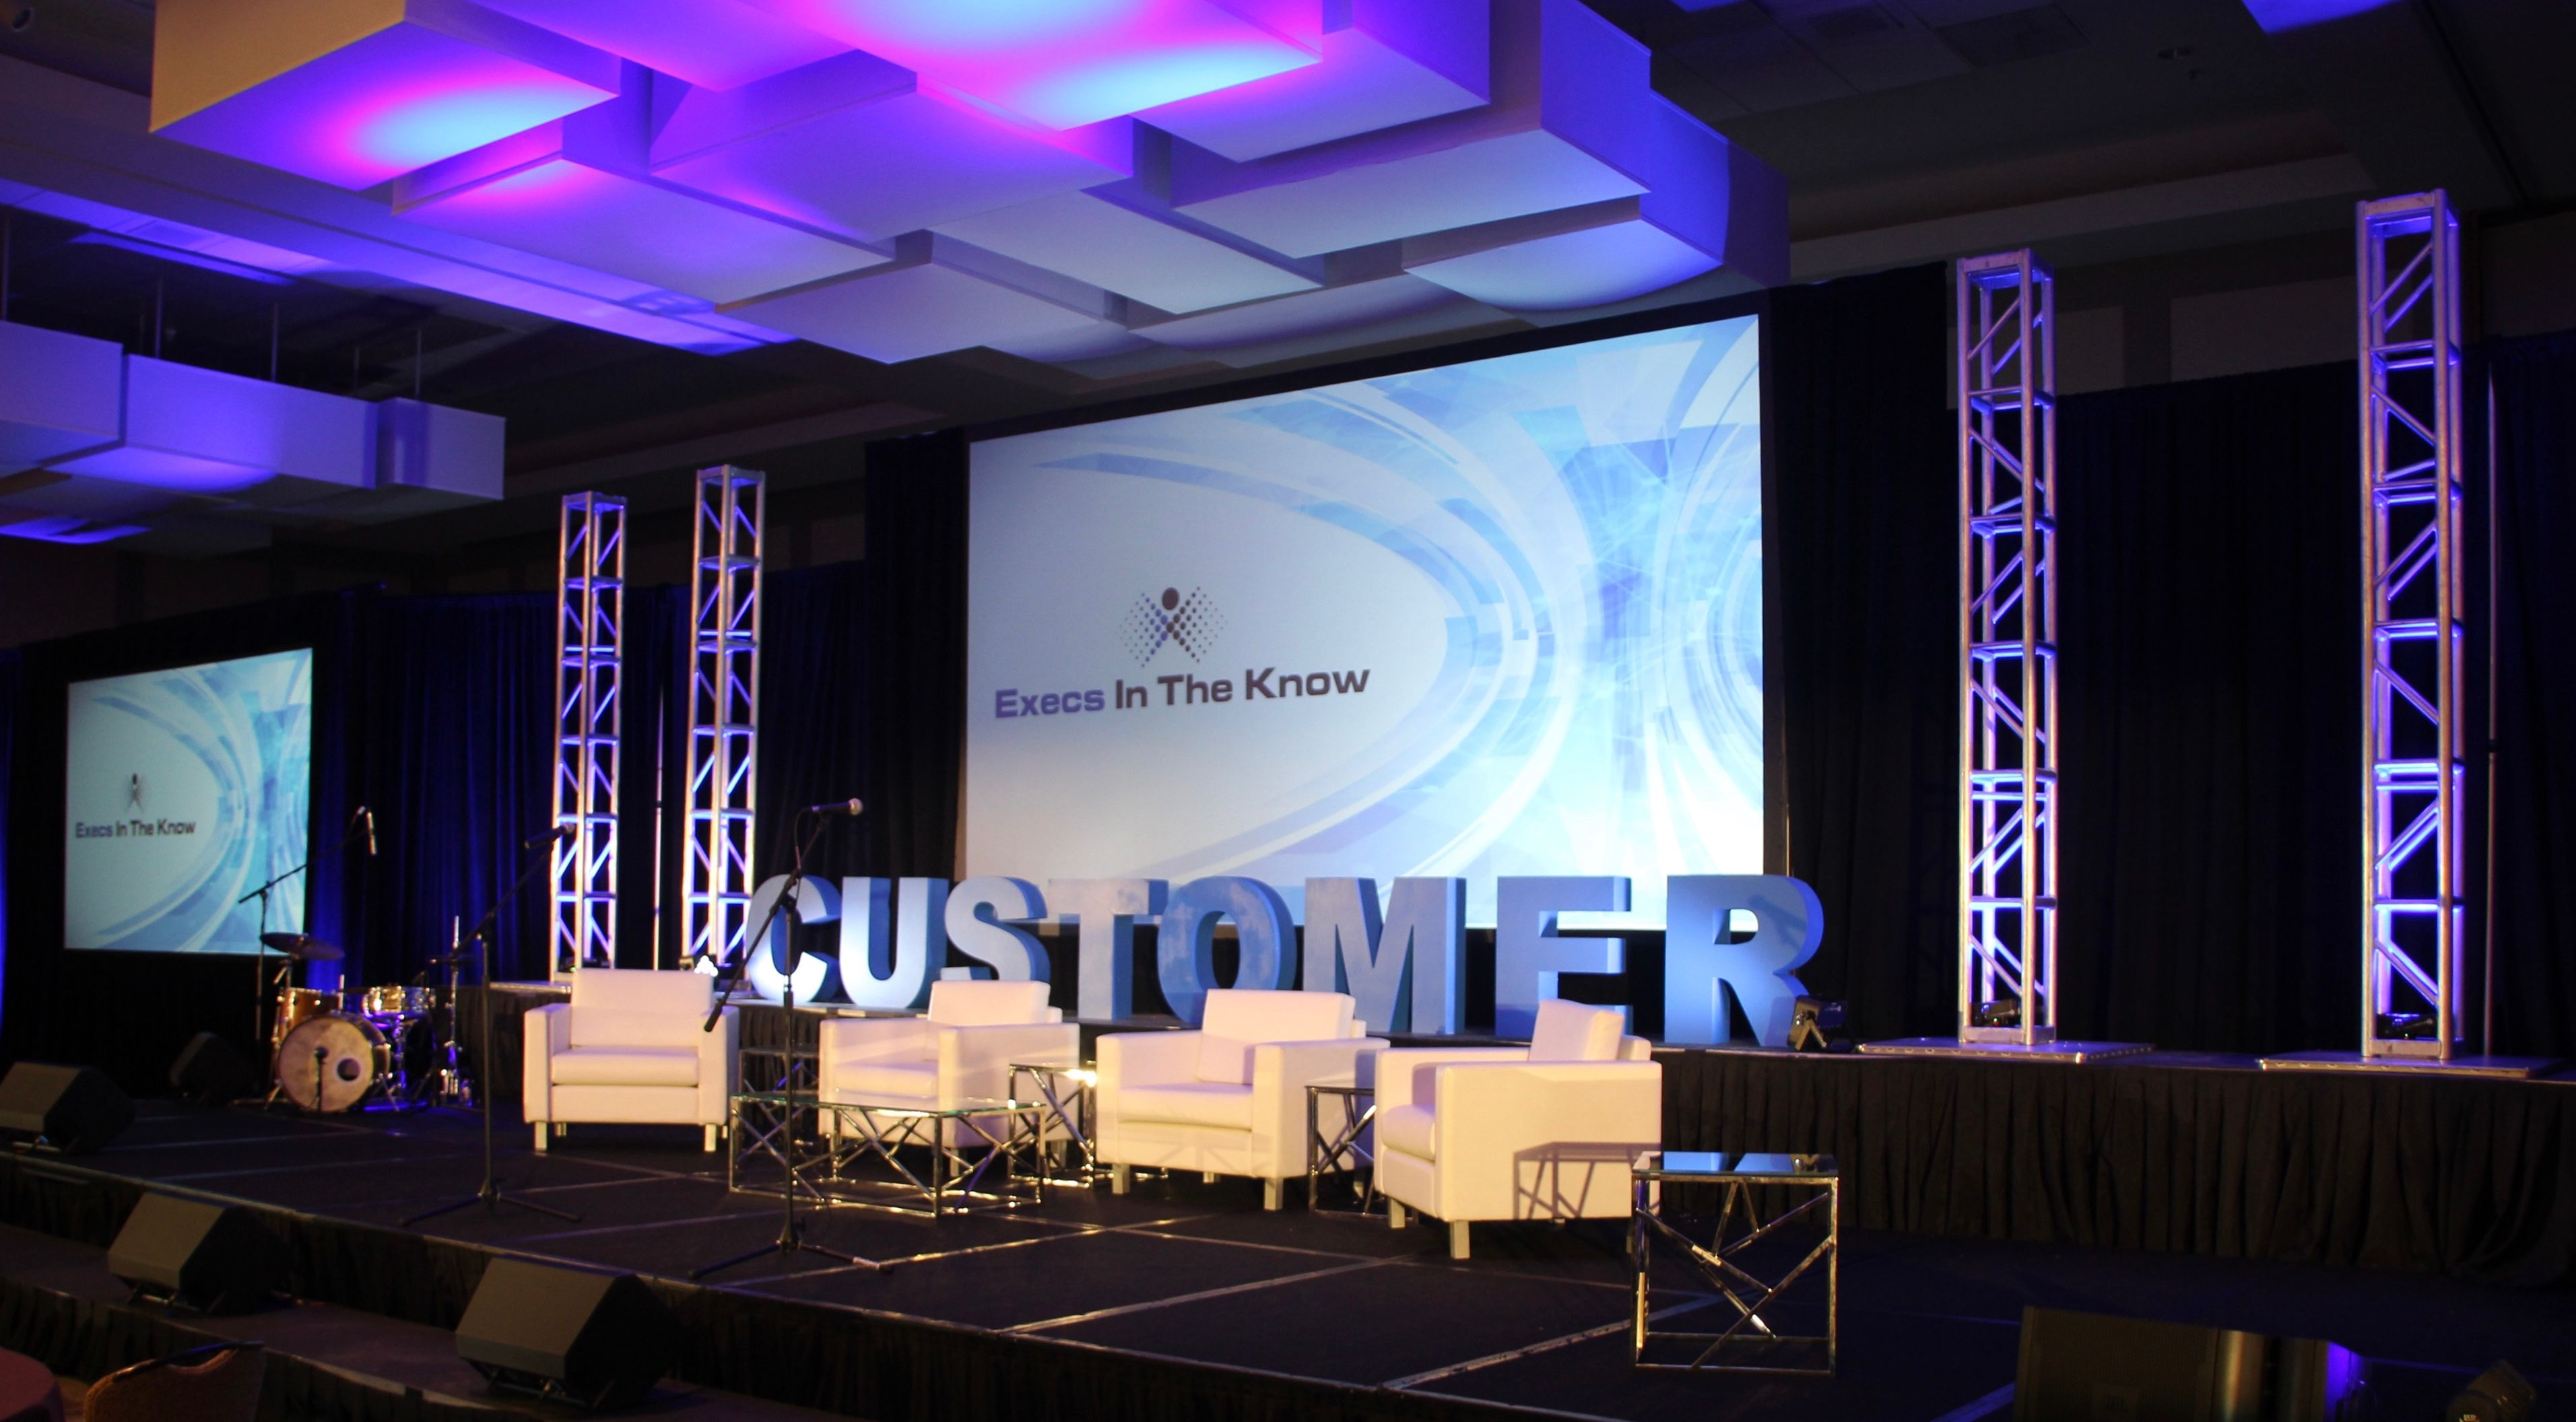 Execs in the Know Stage Design